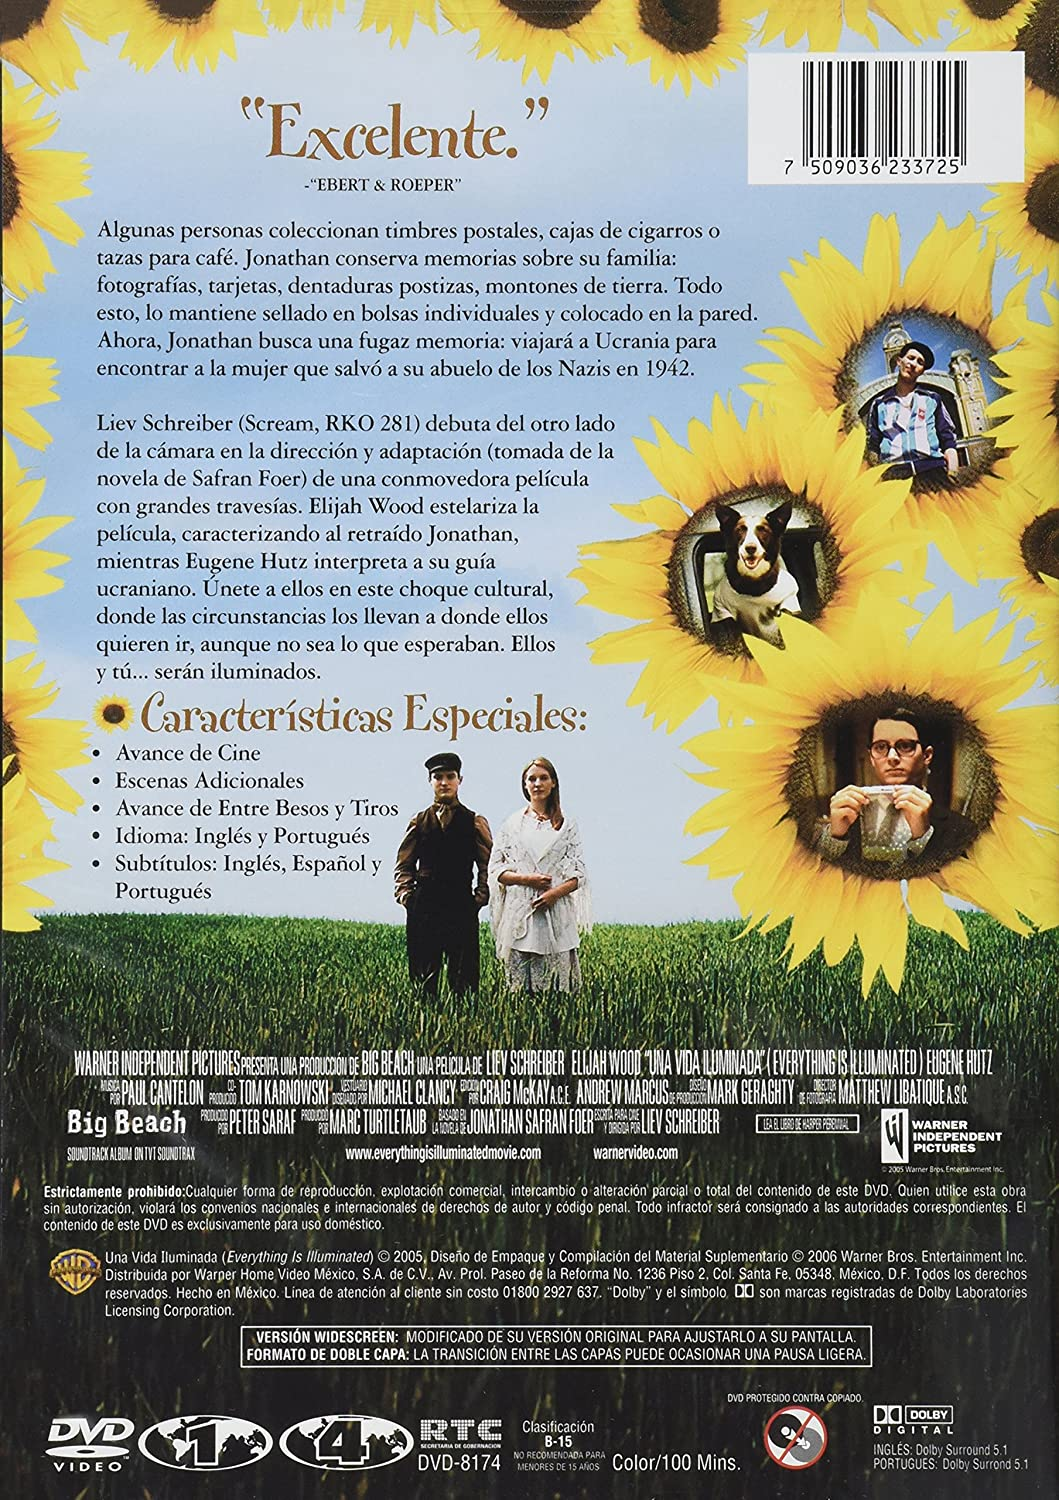 Amazon.com: Una Vida Iluminada (Everything Is Illuminated) [*NTSC/Region 1 & 4 dvd. Import - Latin America] - Mexico: Elijah Wood, Eugene Hutz, Boris Leskin ...